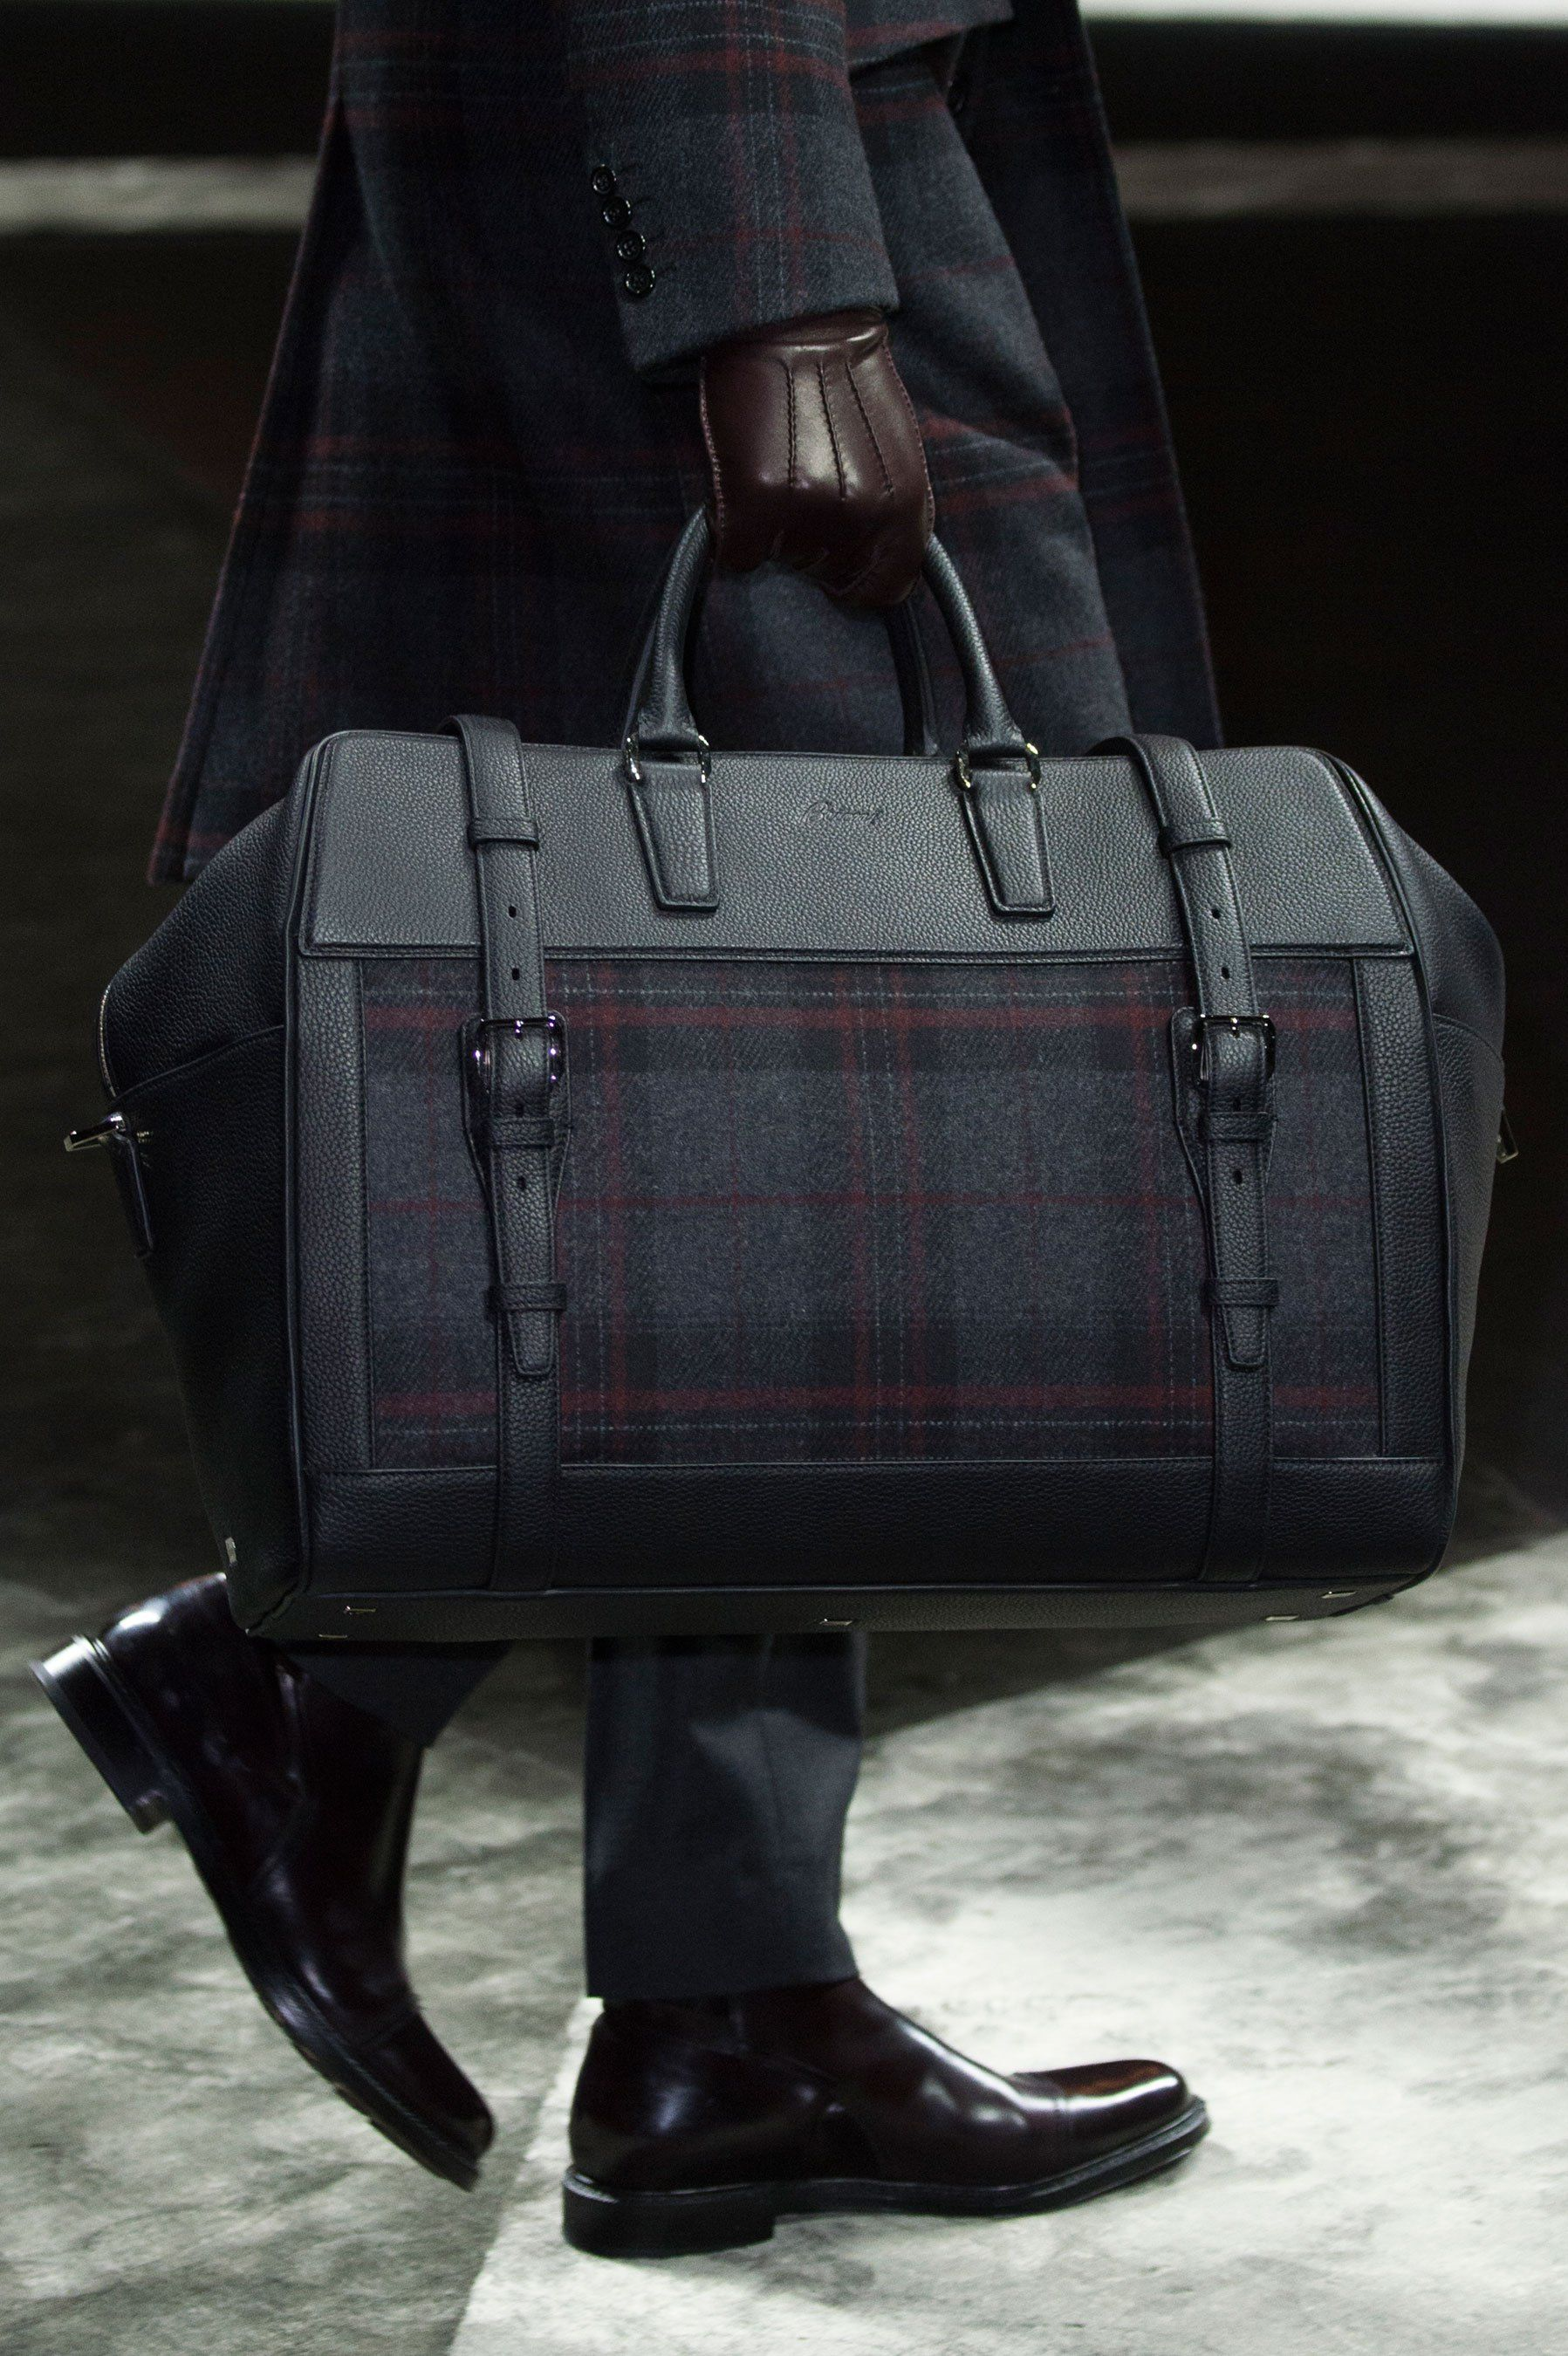 53fad97efb0a Brioni Fall 2015 | A Bag | Bags, Fashion bags и Handbags for men